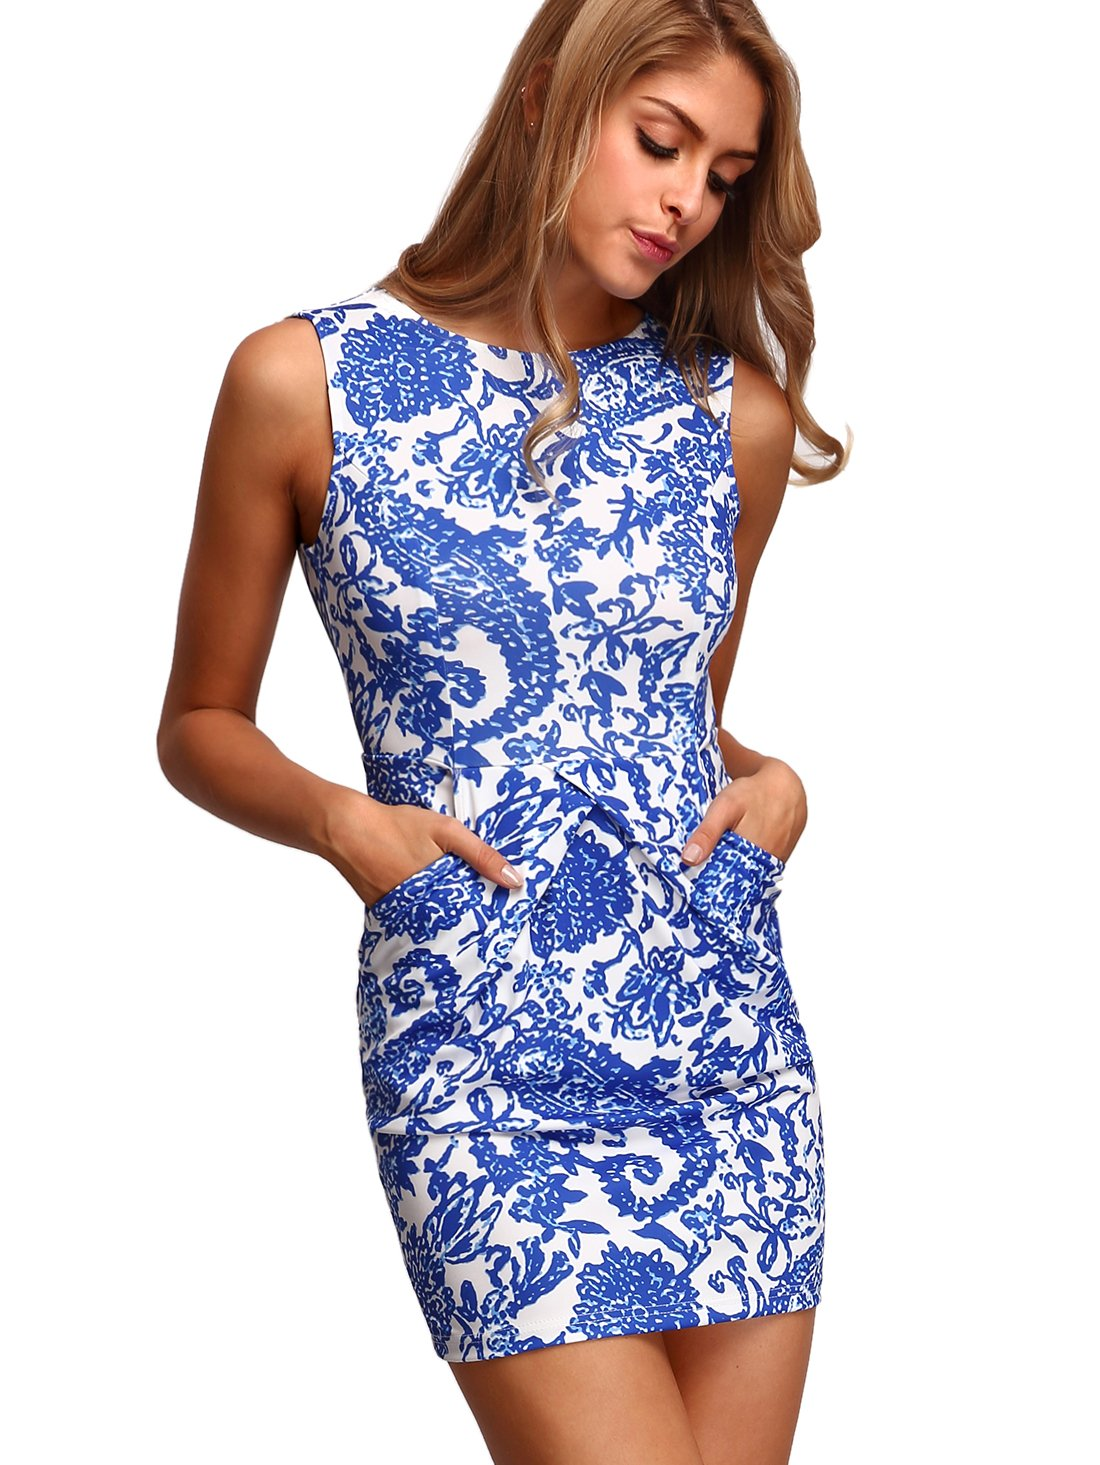 Available at Amazon: Floerns Women's Pocket Sleeveless Tribal Print Bodycon Dress